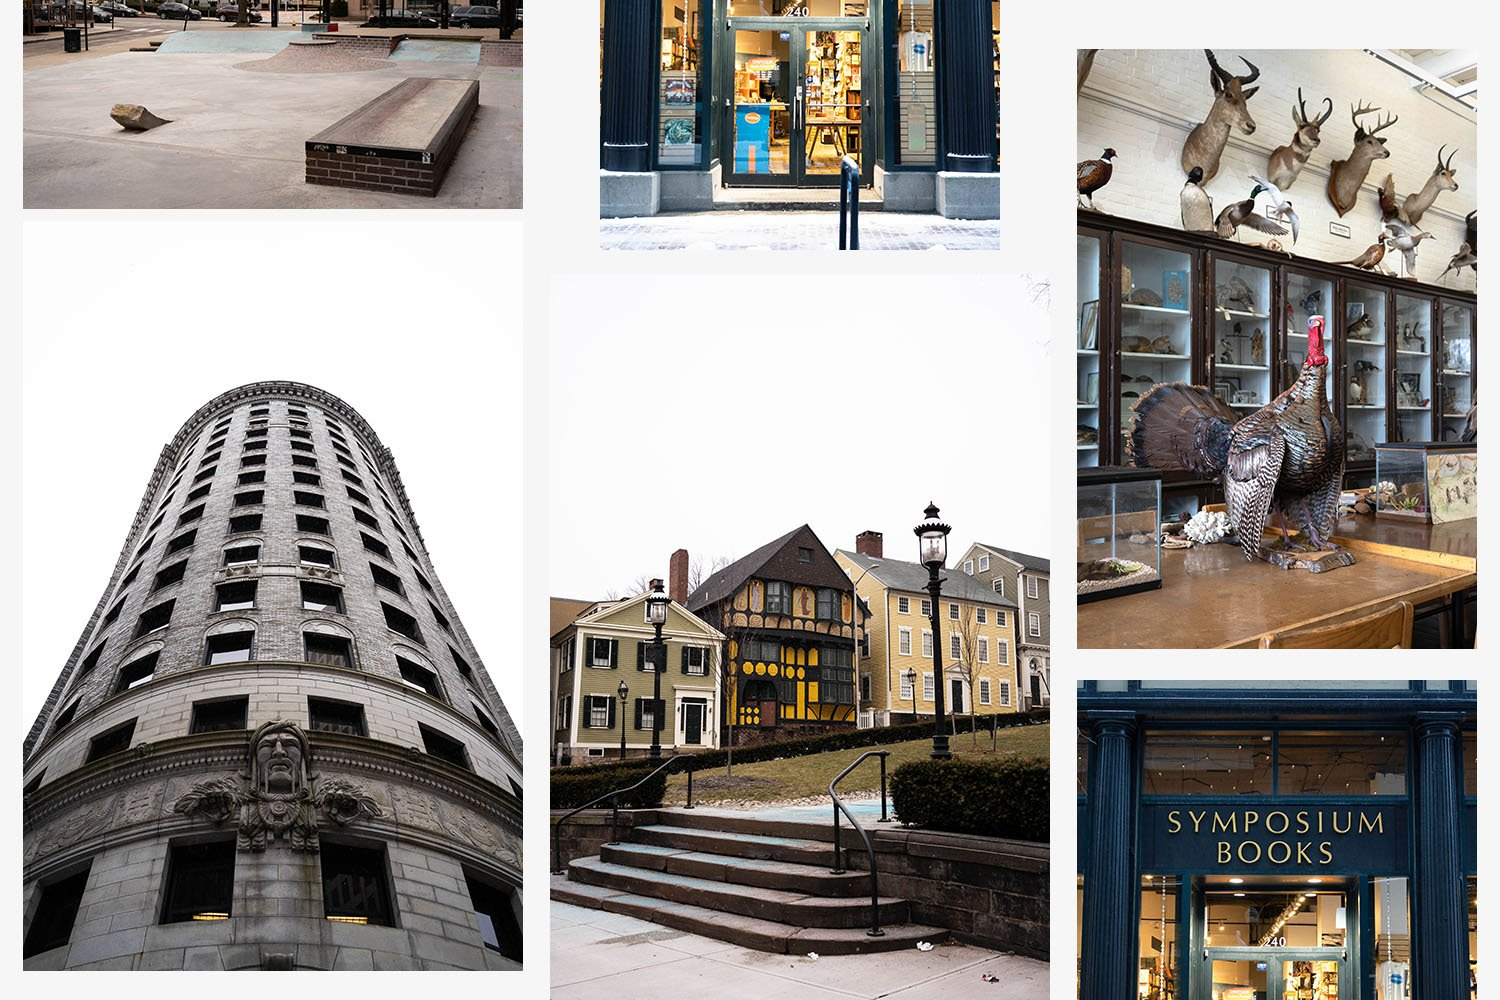 Collage of images showcasing Providence, Rhode Island